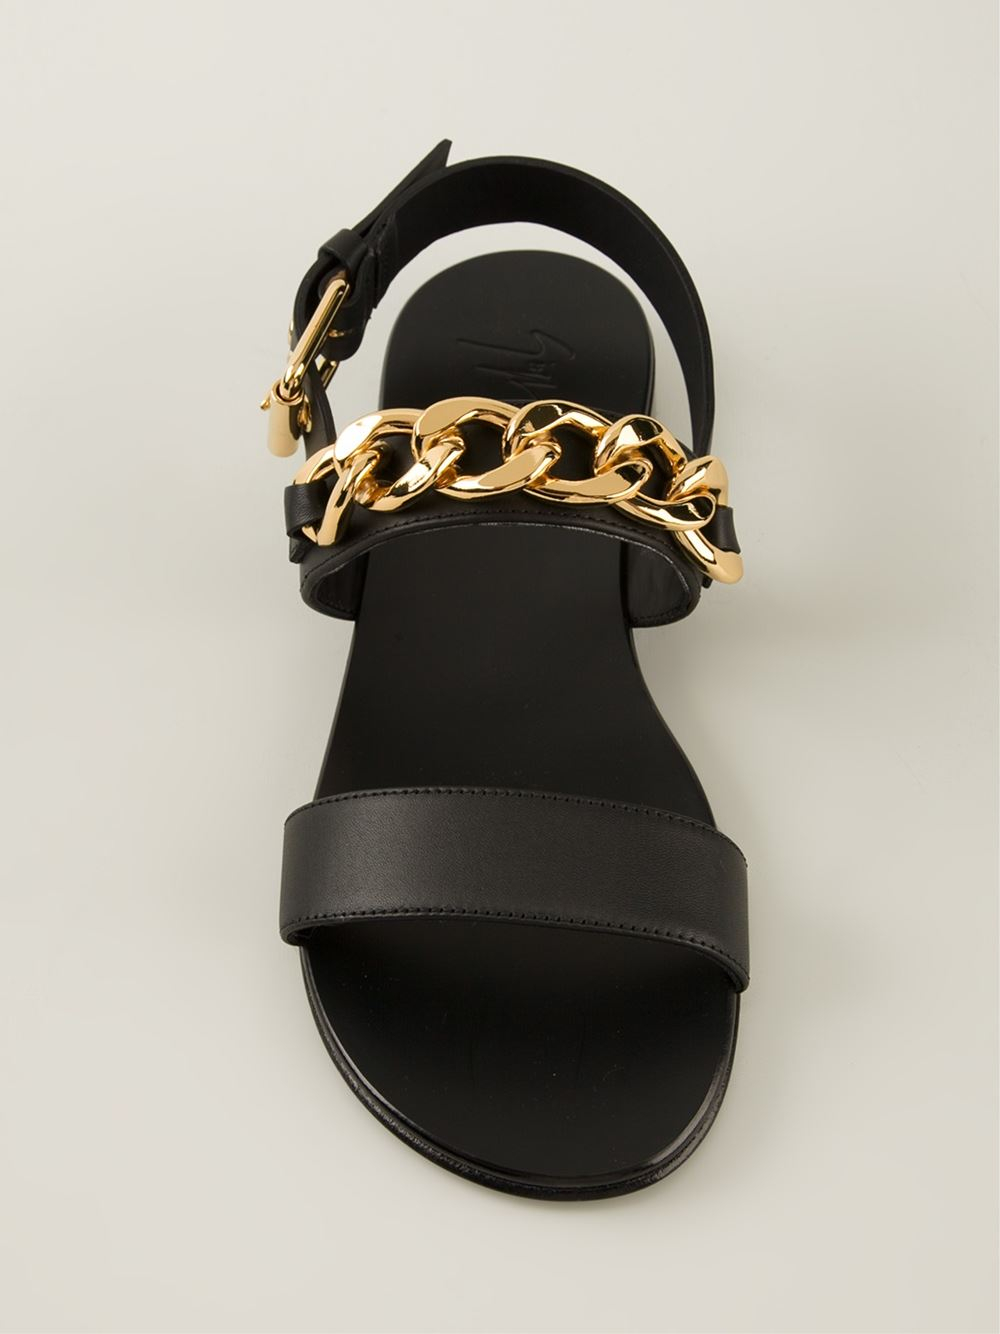 bbbf9127330e4 ... free shipping lyst giuseppe zanotti chain trim sandals in black for men  32736 93ee2